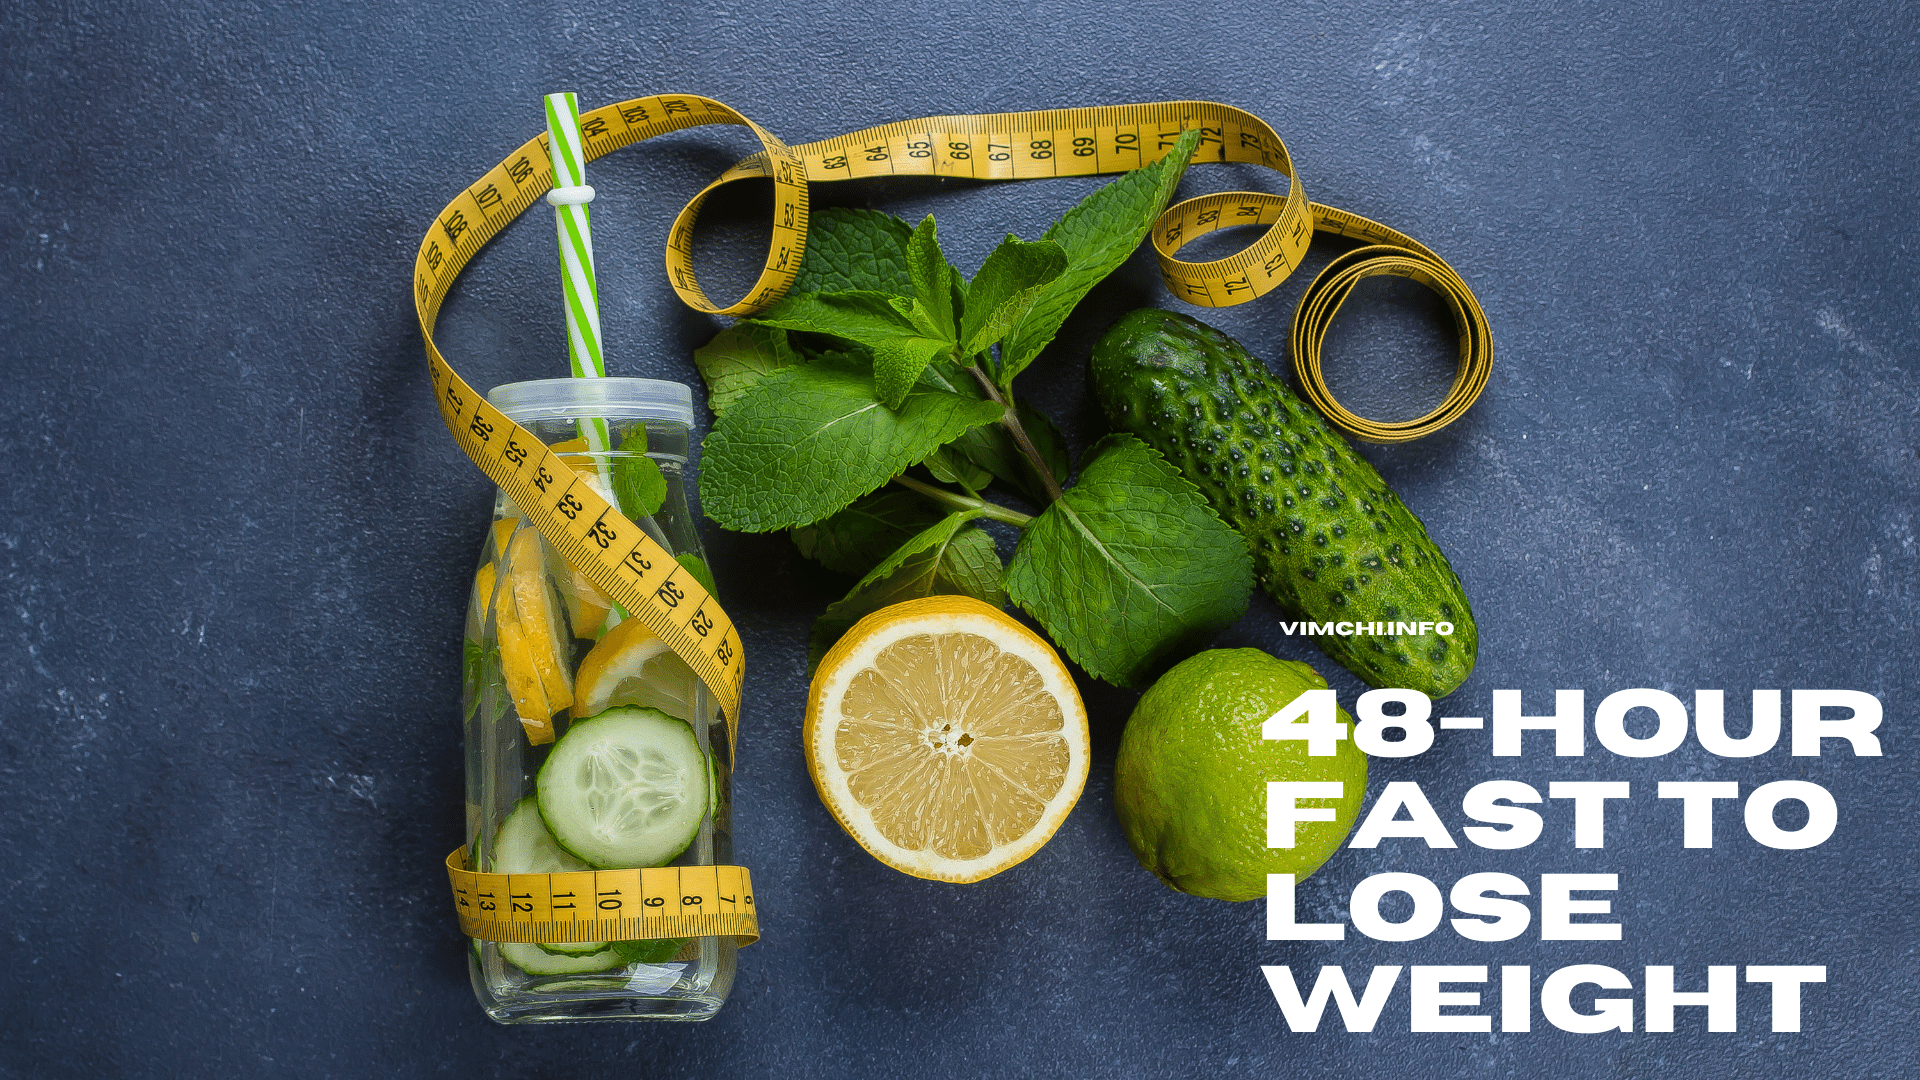 48-hour fast to lose weight